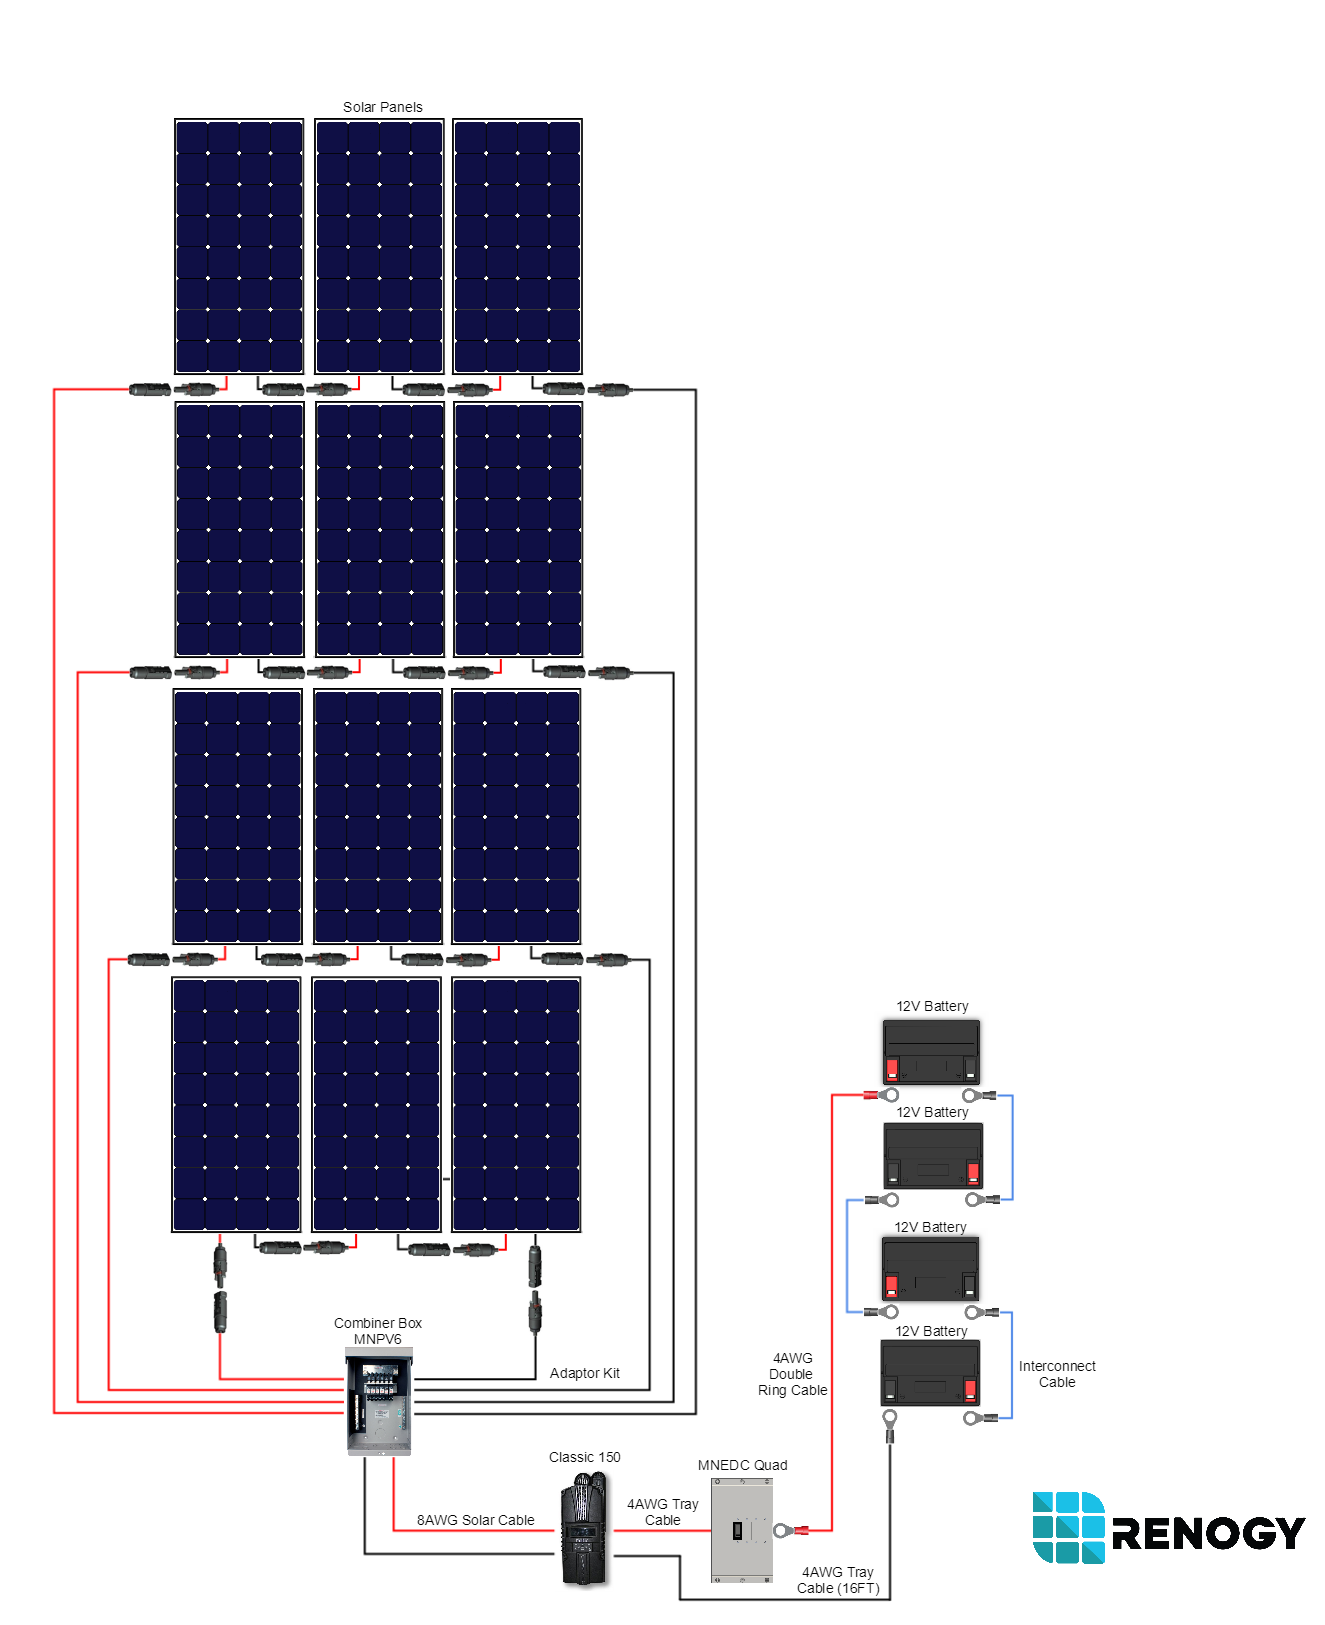 Cabin Solar Power Wiring Diagram Custom 12 Volt Panel Renogy 3600 Watt 48 Monocrystalline Kit Rh Com Battery Diagrams Typical